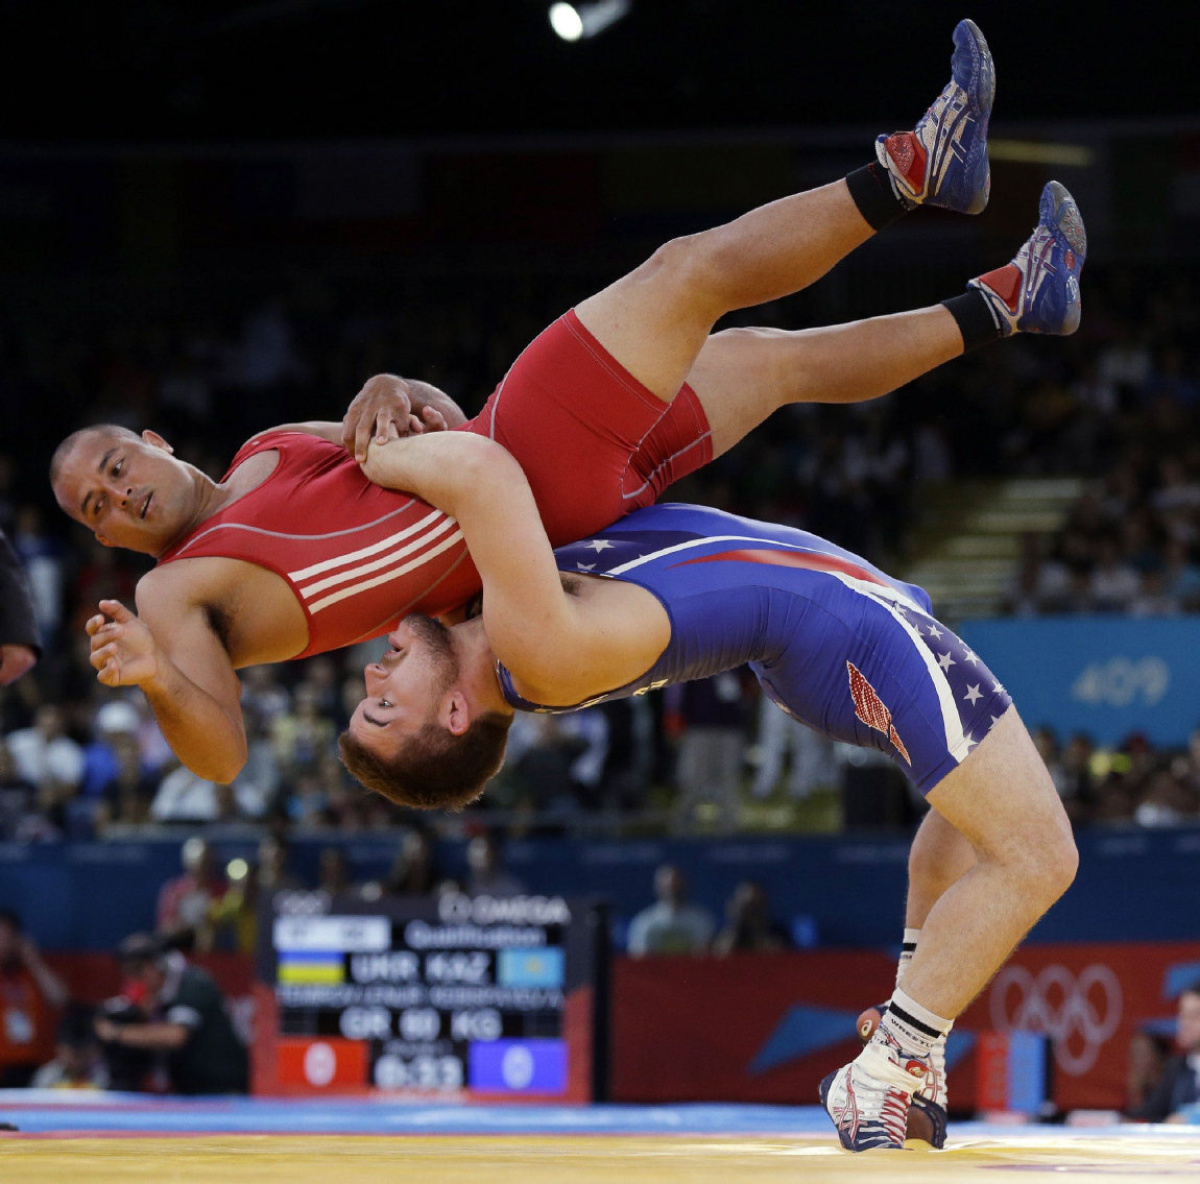 Wrestling to be dropped from 2020 Olympics Toronto Star 1200x1184